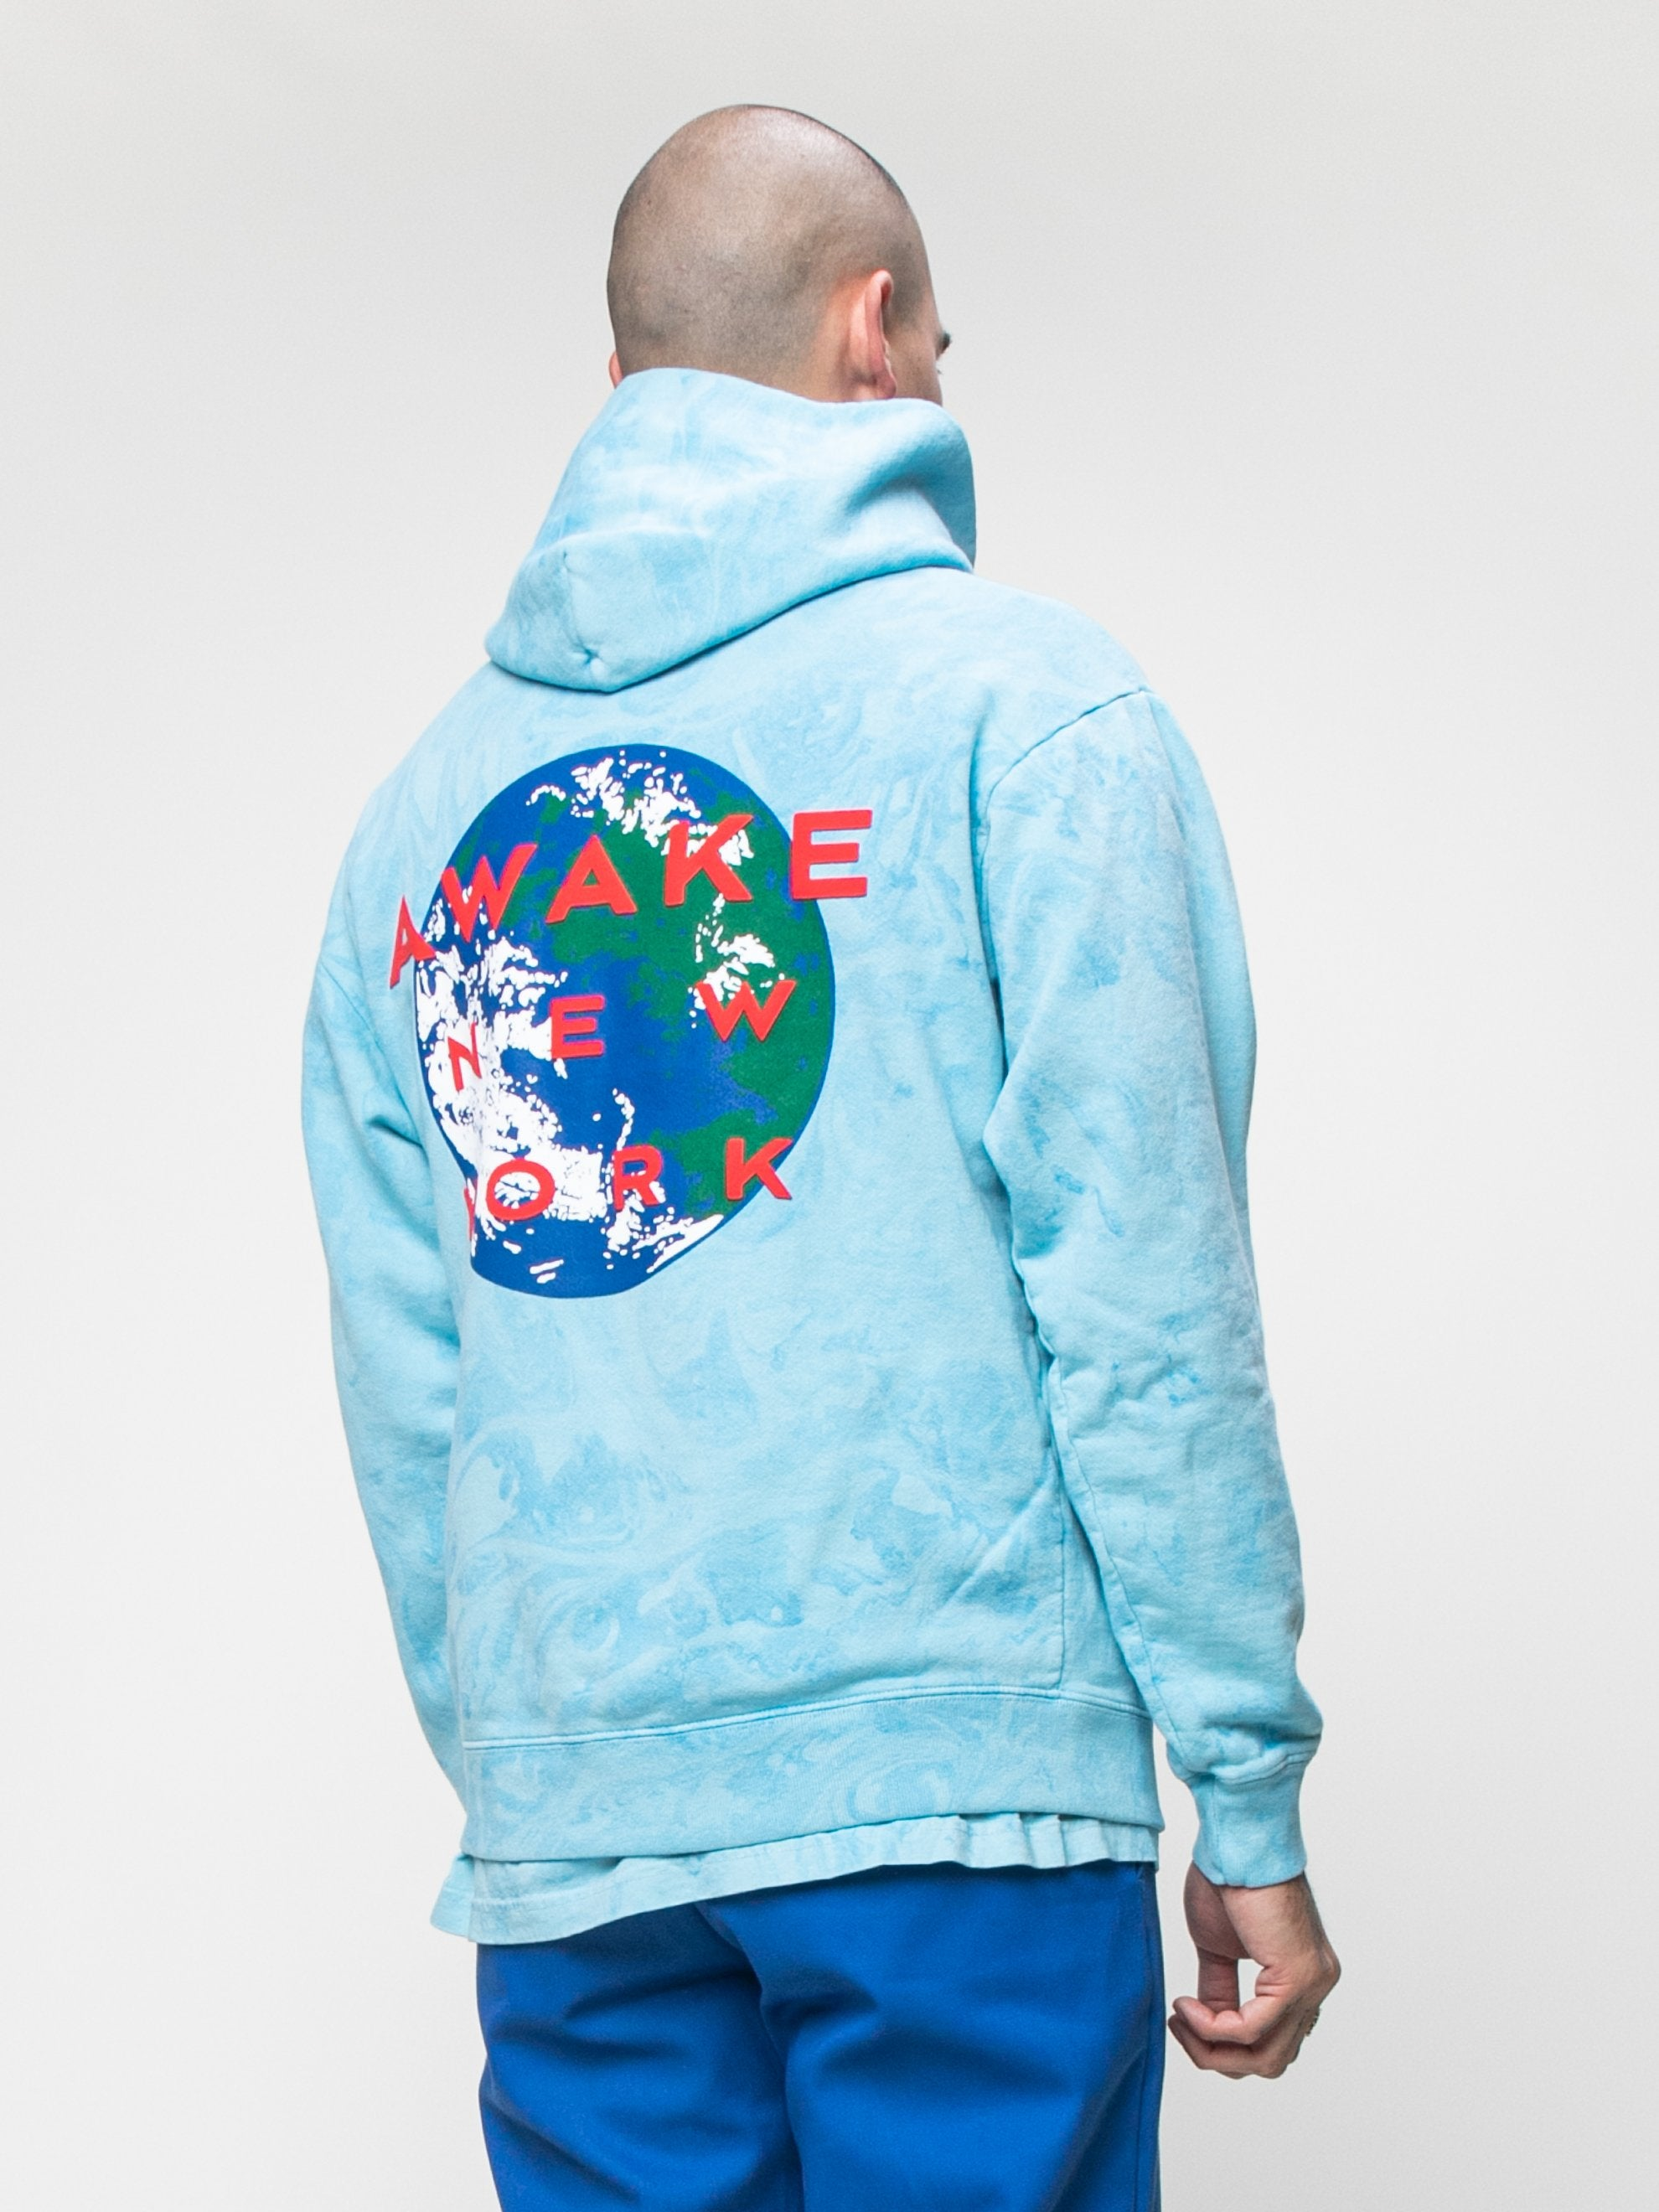 Tie Dye Awake x Eco World Hooded Sweatshirt 5